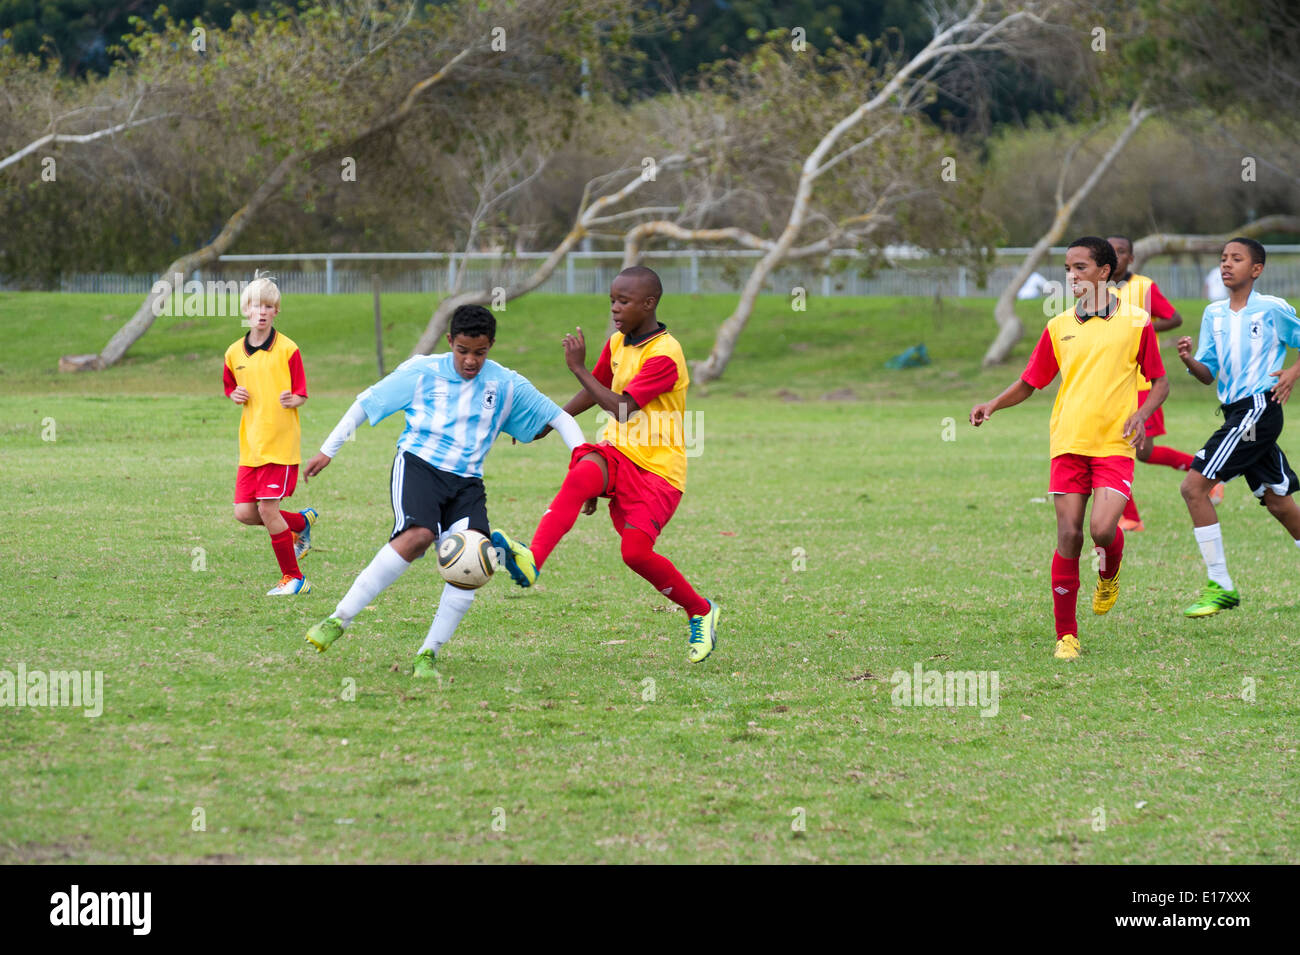 Junior football players tackling and kicking the ball, Cape Town, South Africa - Stock Image